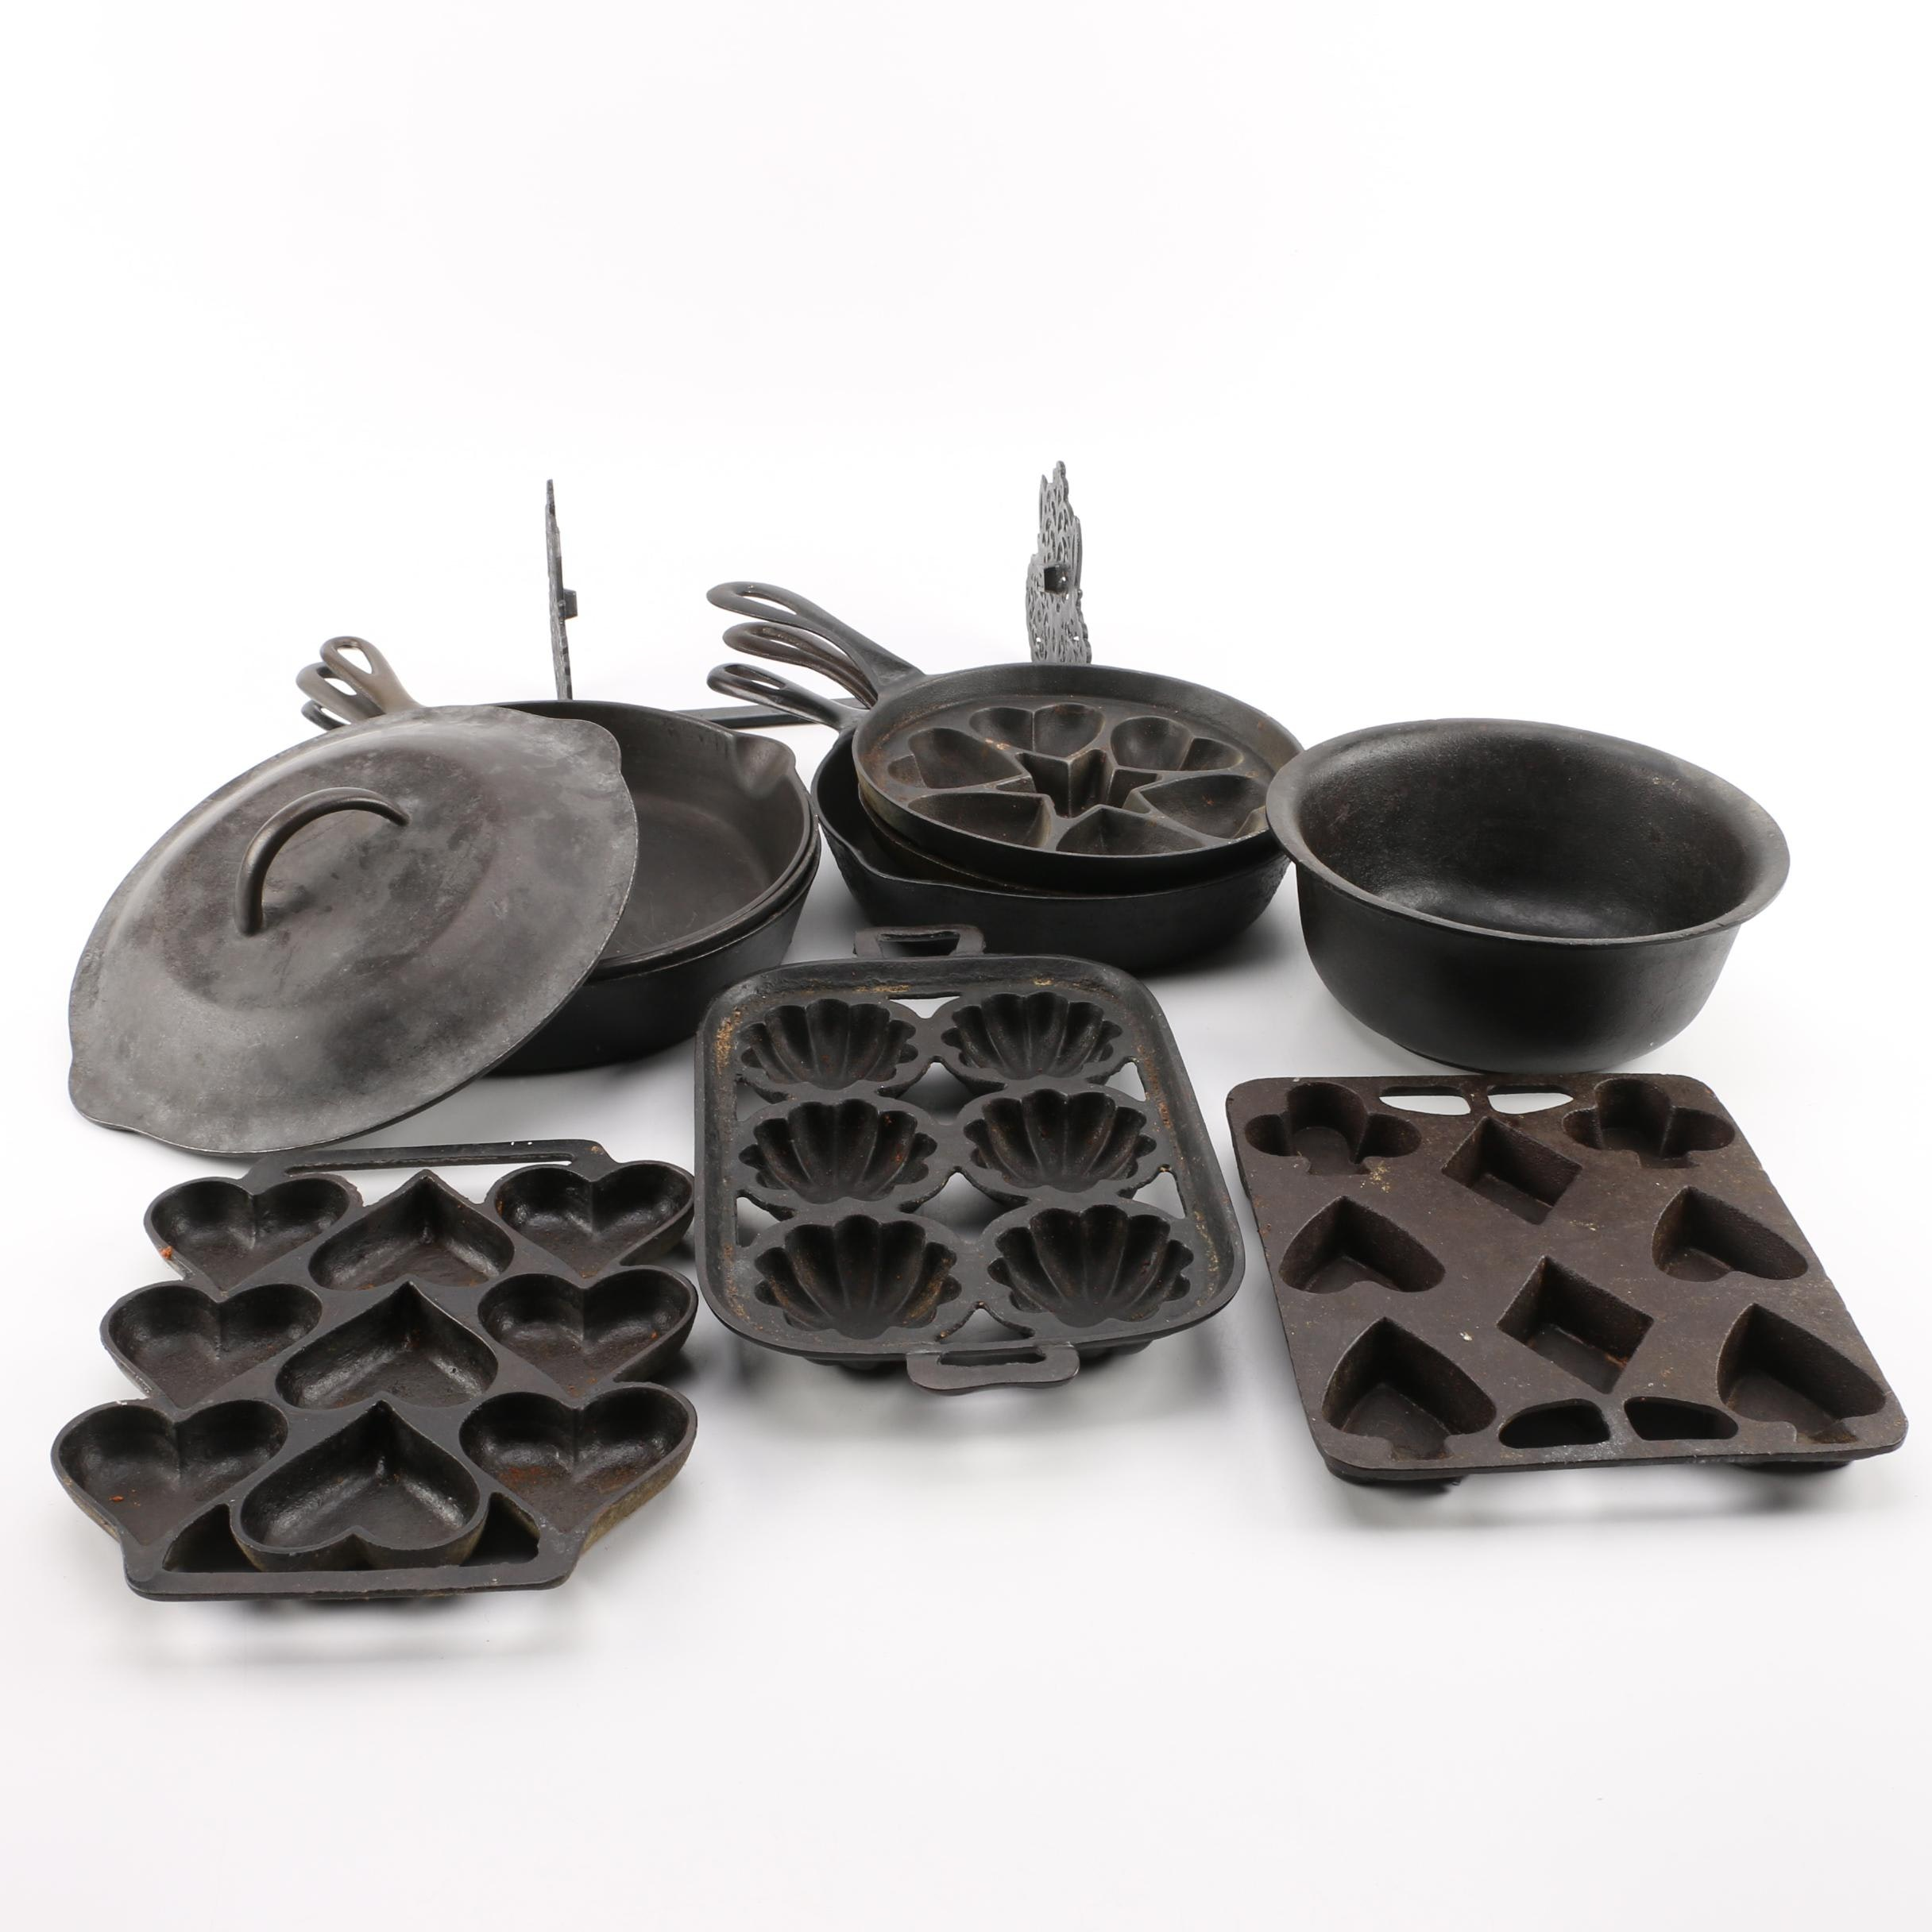 Cast Iron Cookware and Bakeware